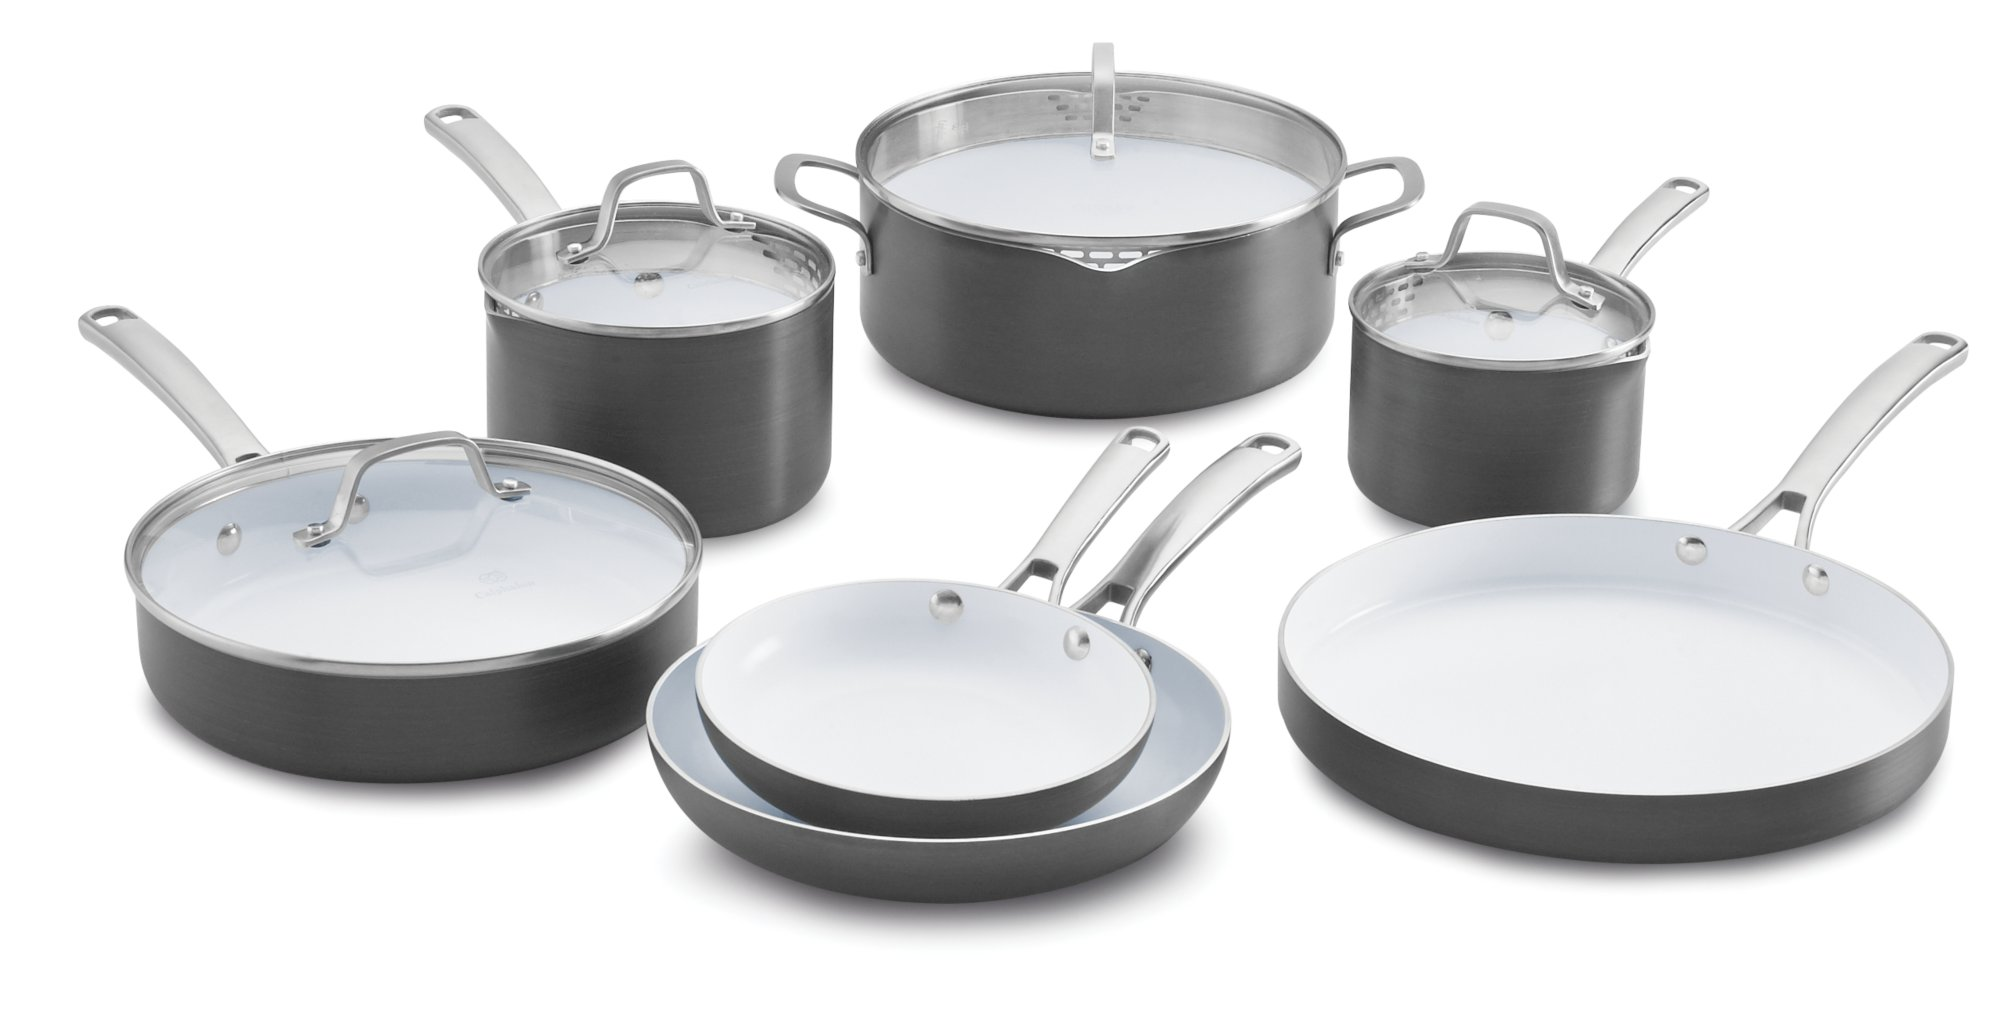 calphalon classic ceramic nonstick 11pc cookware set